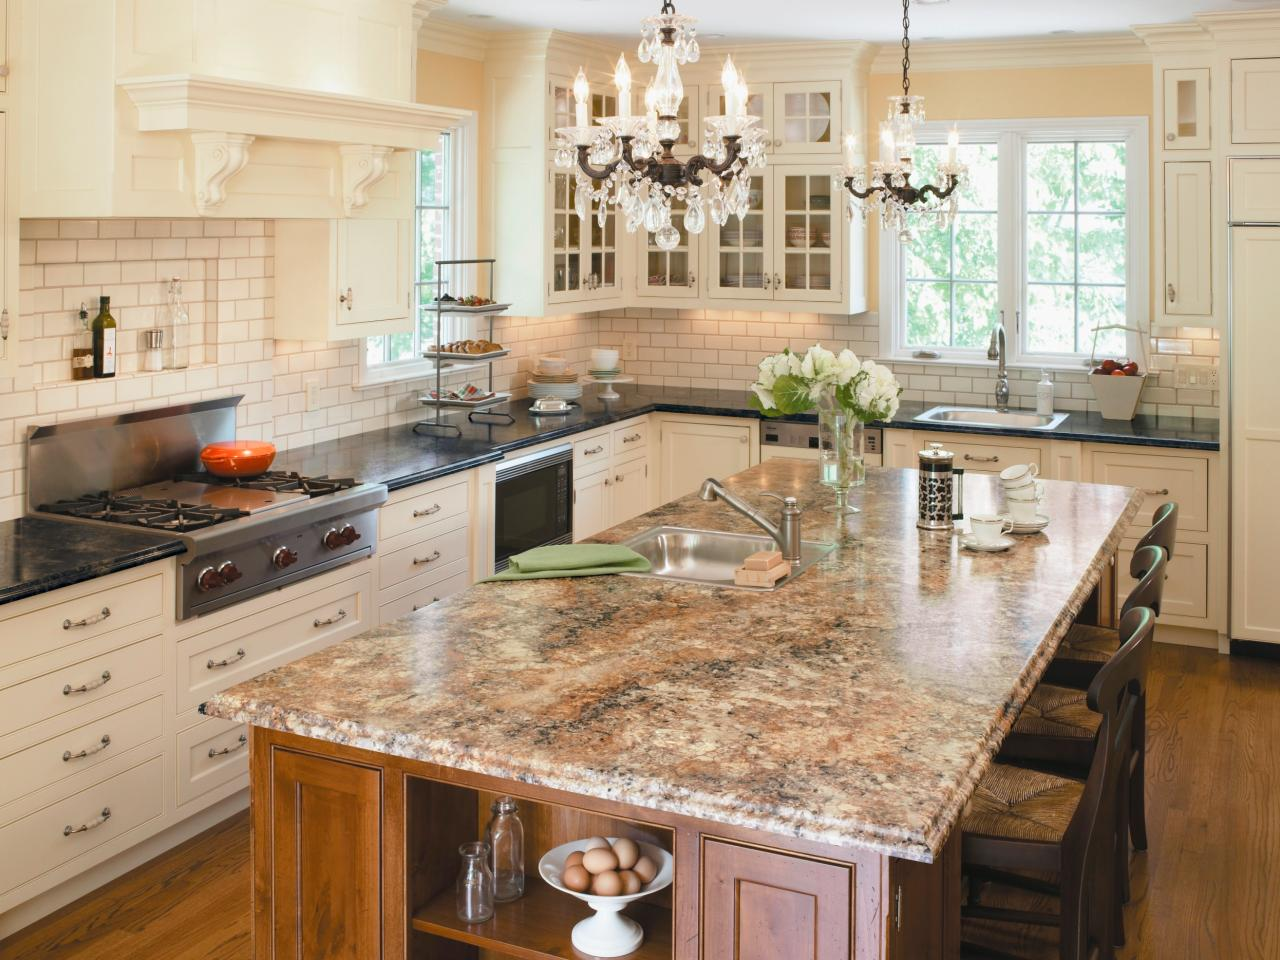 Http Www Hgtv Com Remodel Kitchen Remodel Choosing Kitchen Countertops